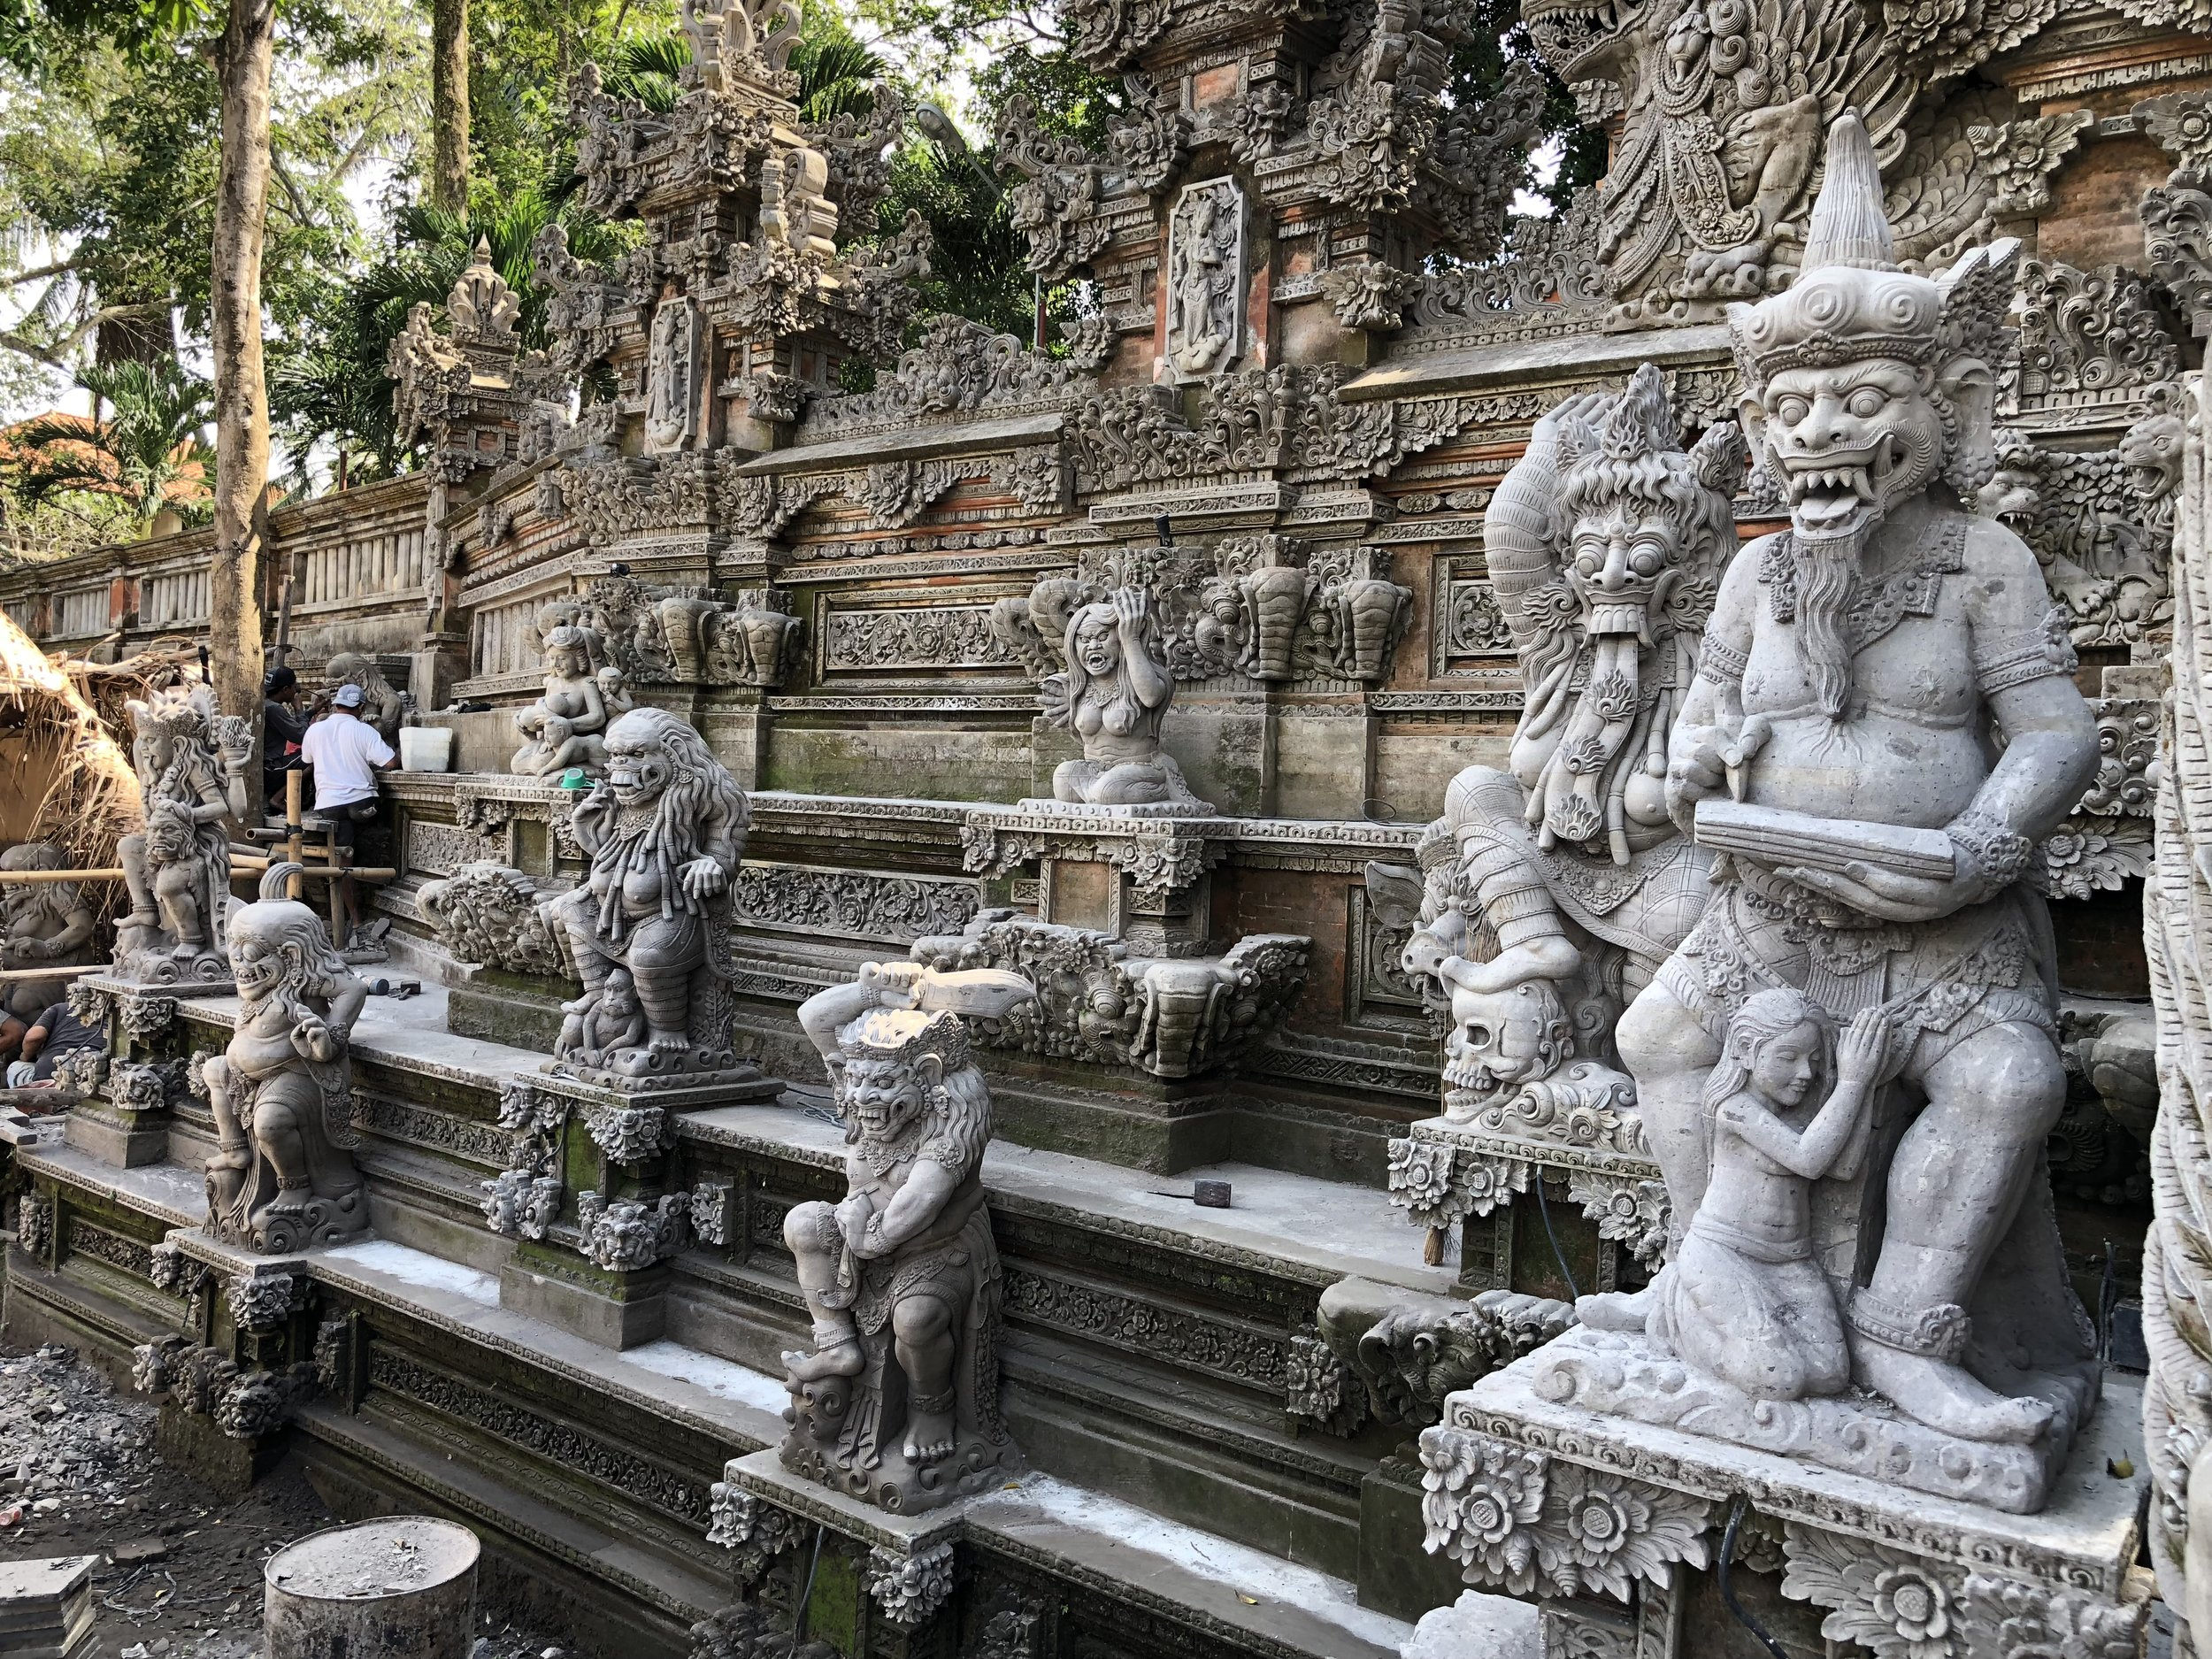 Temples of death on Bali feature frightening statues out front